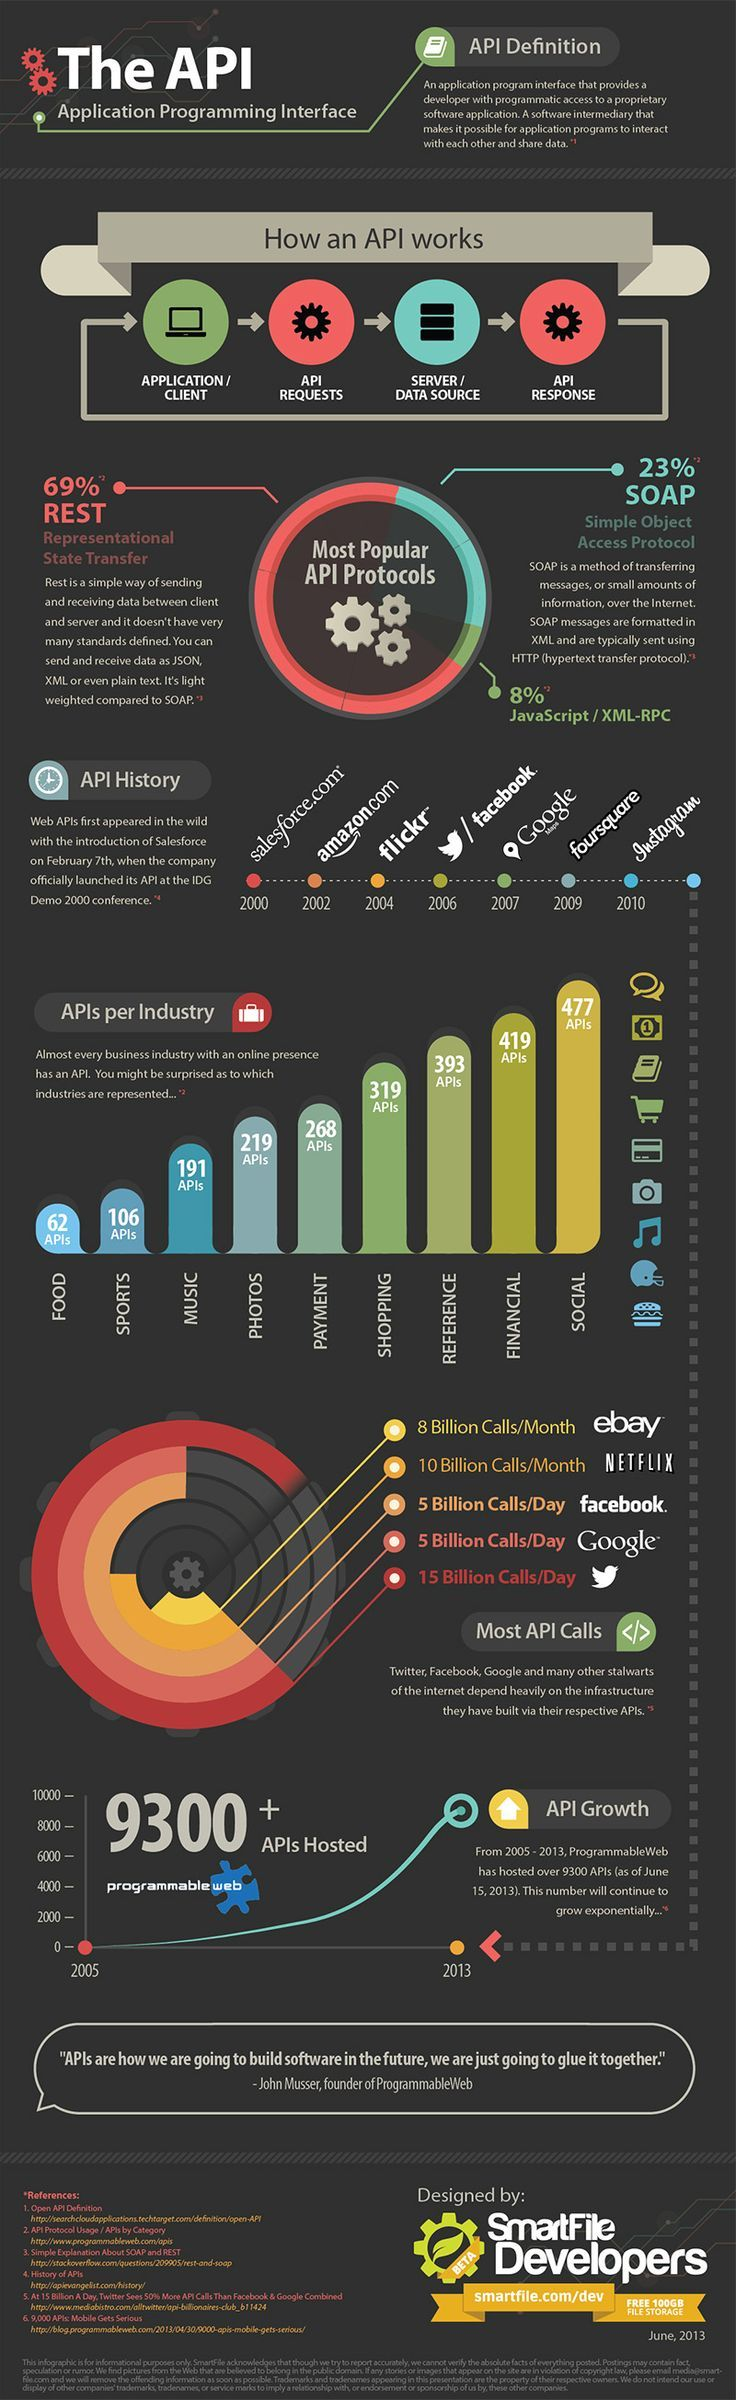 Application Programming Interface The API Infographic